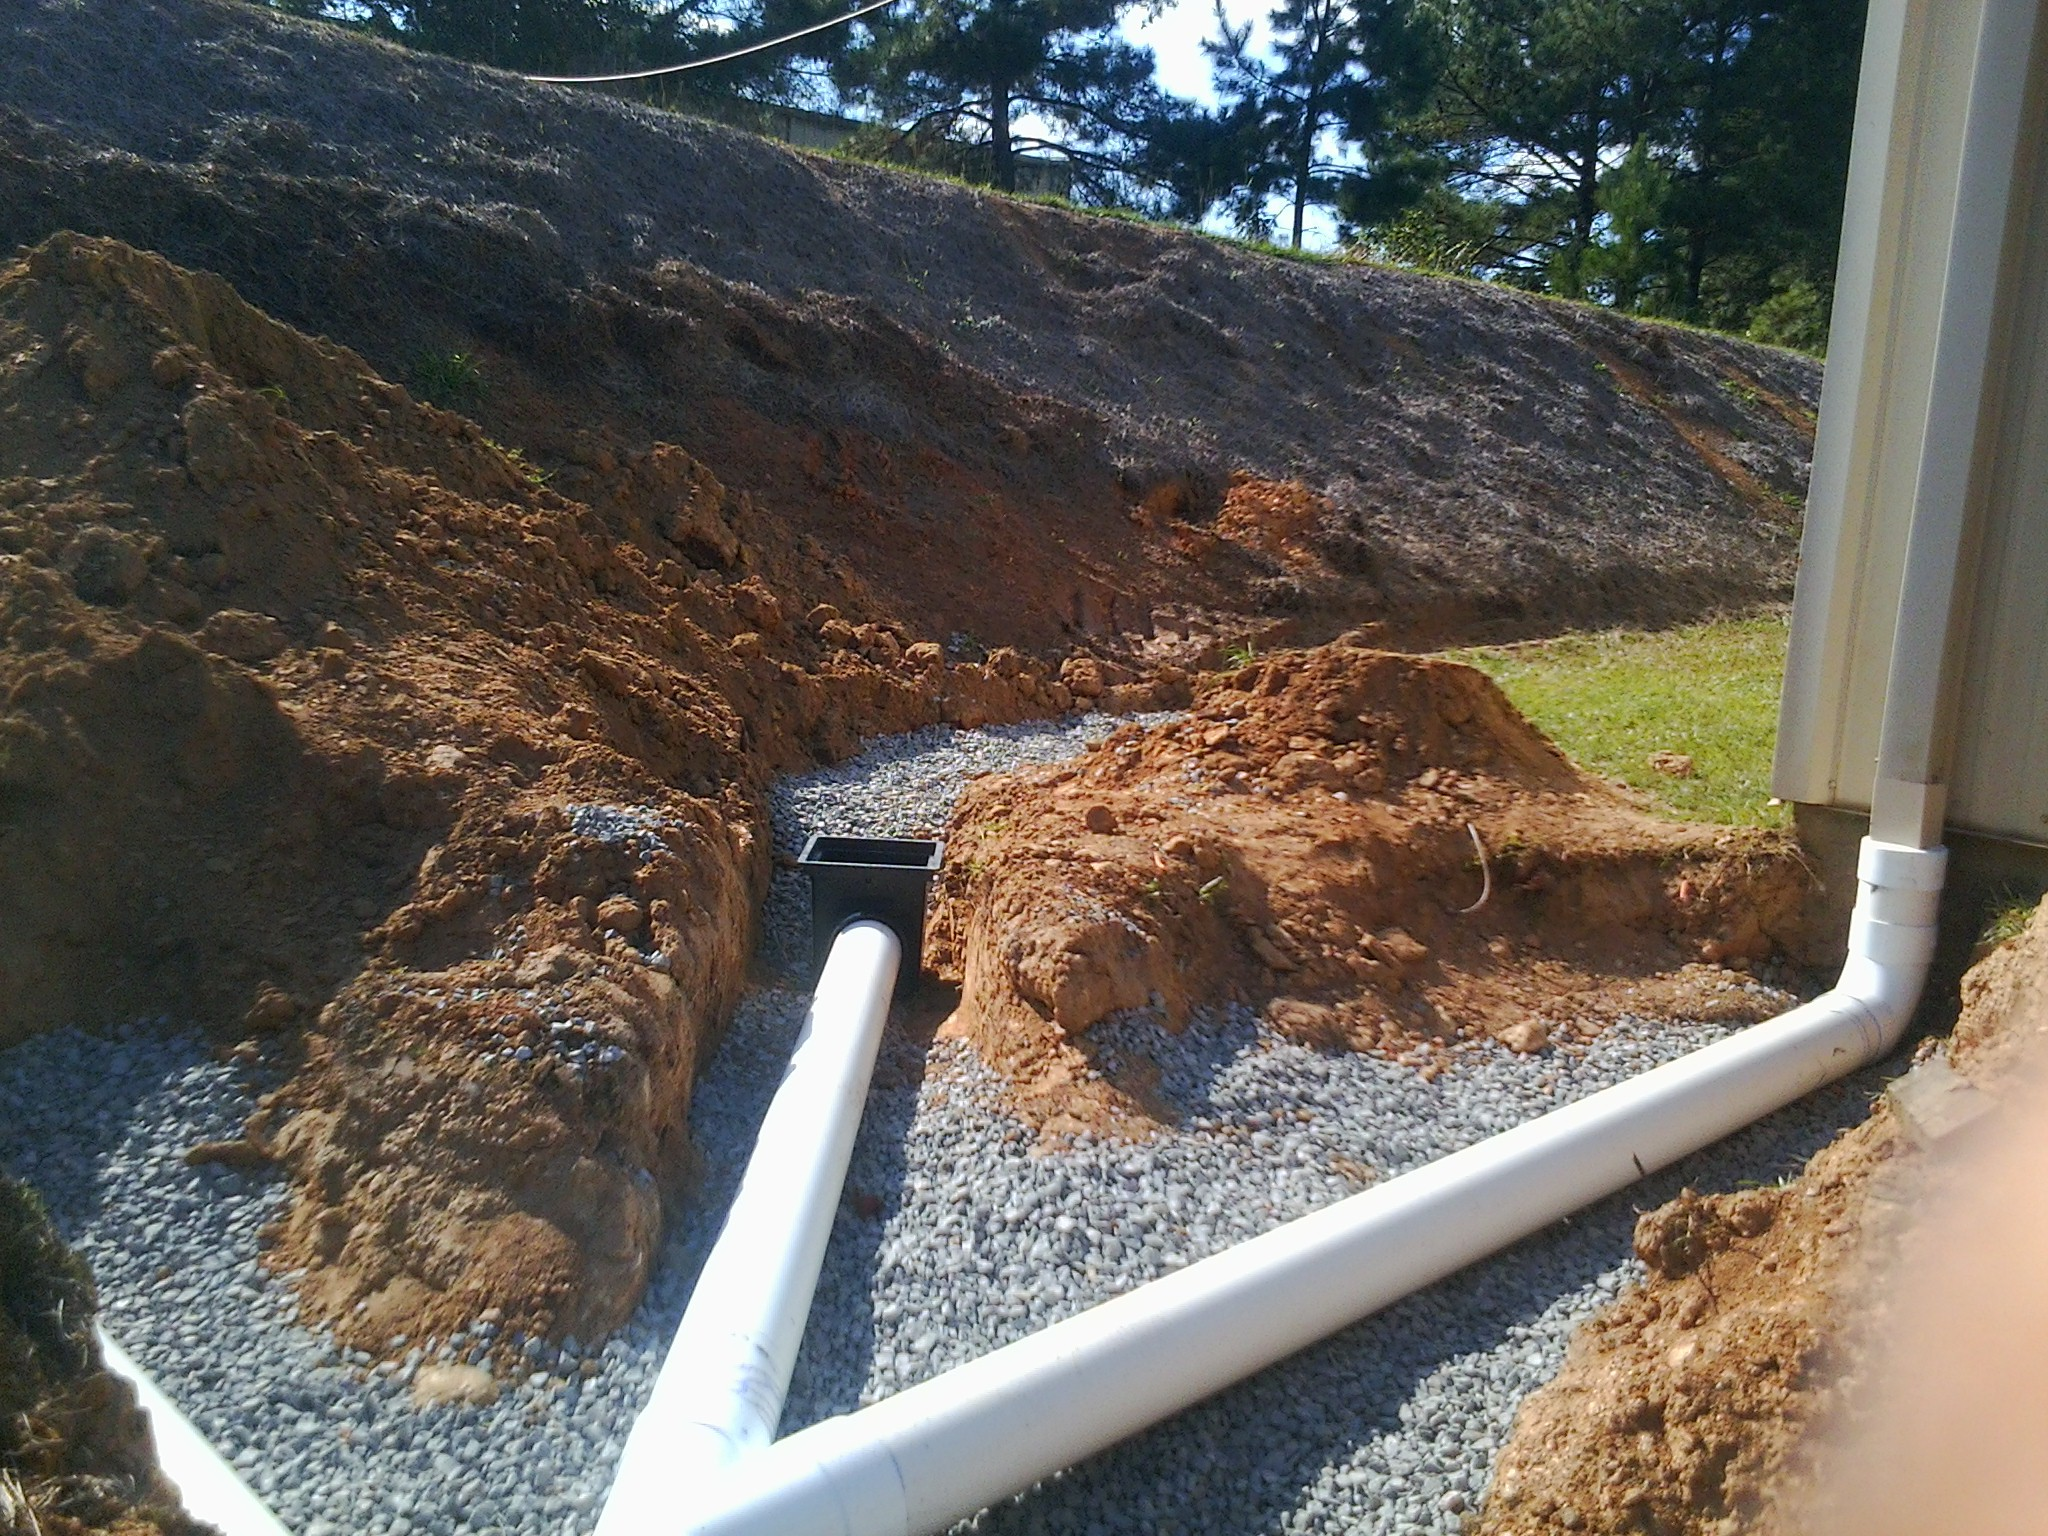 French drain cost nds ez flow french drain downspout for Gutter drainage systems design